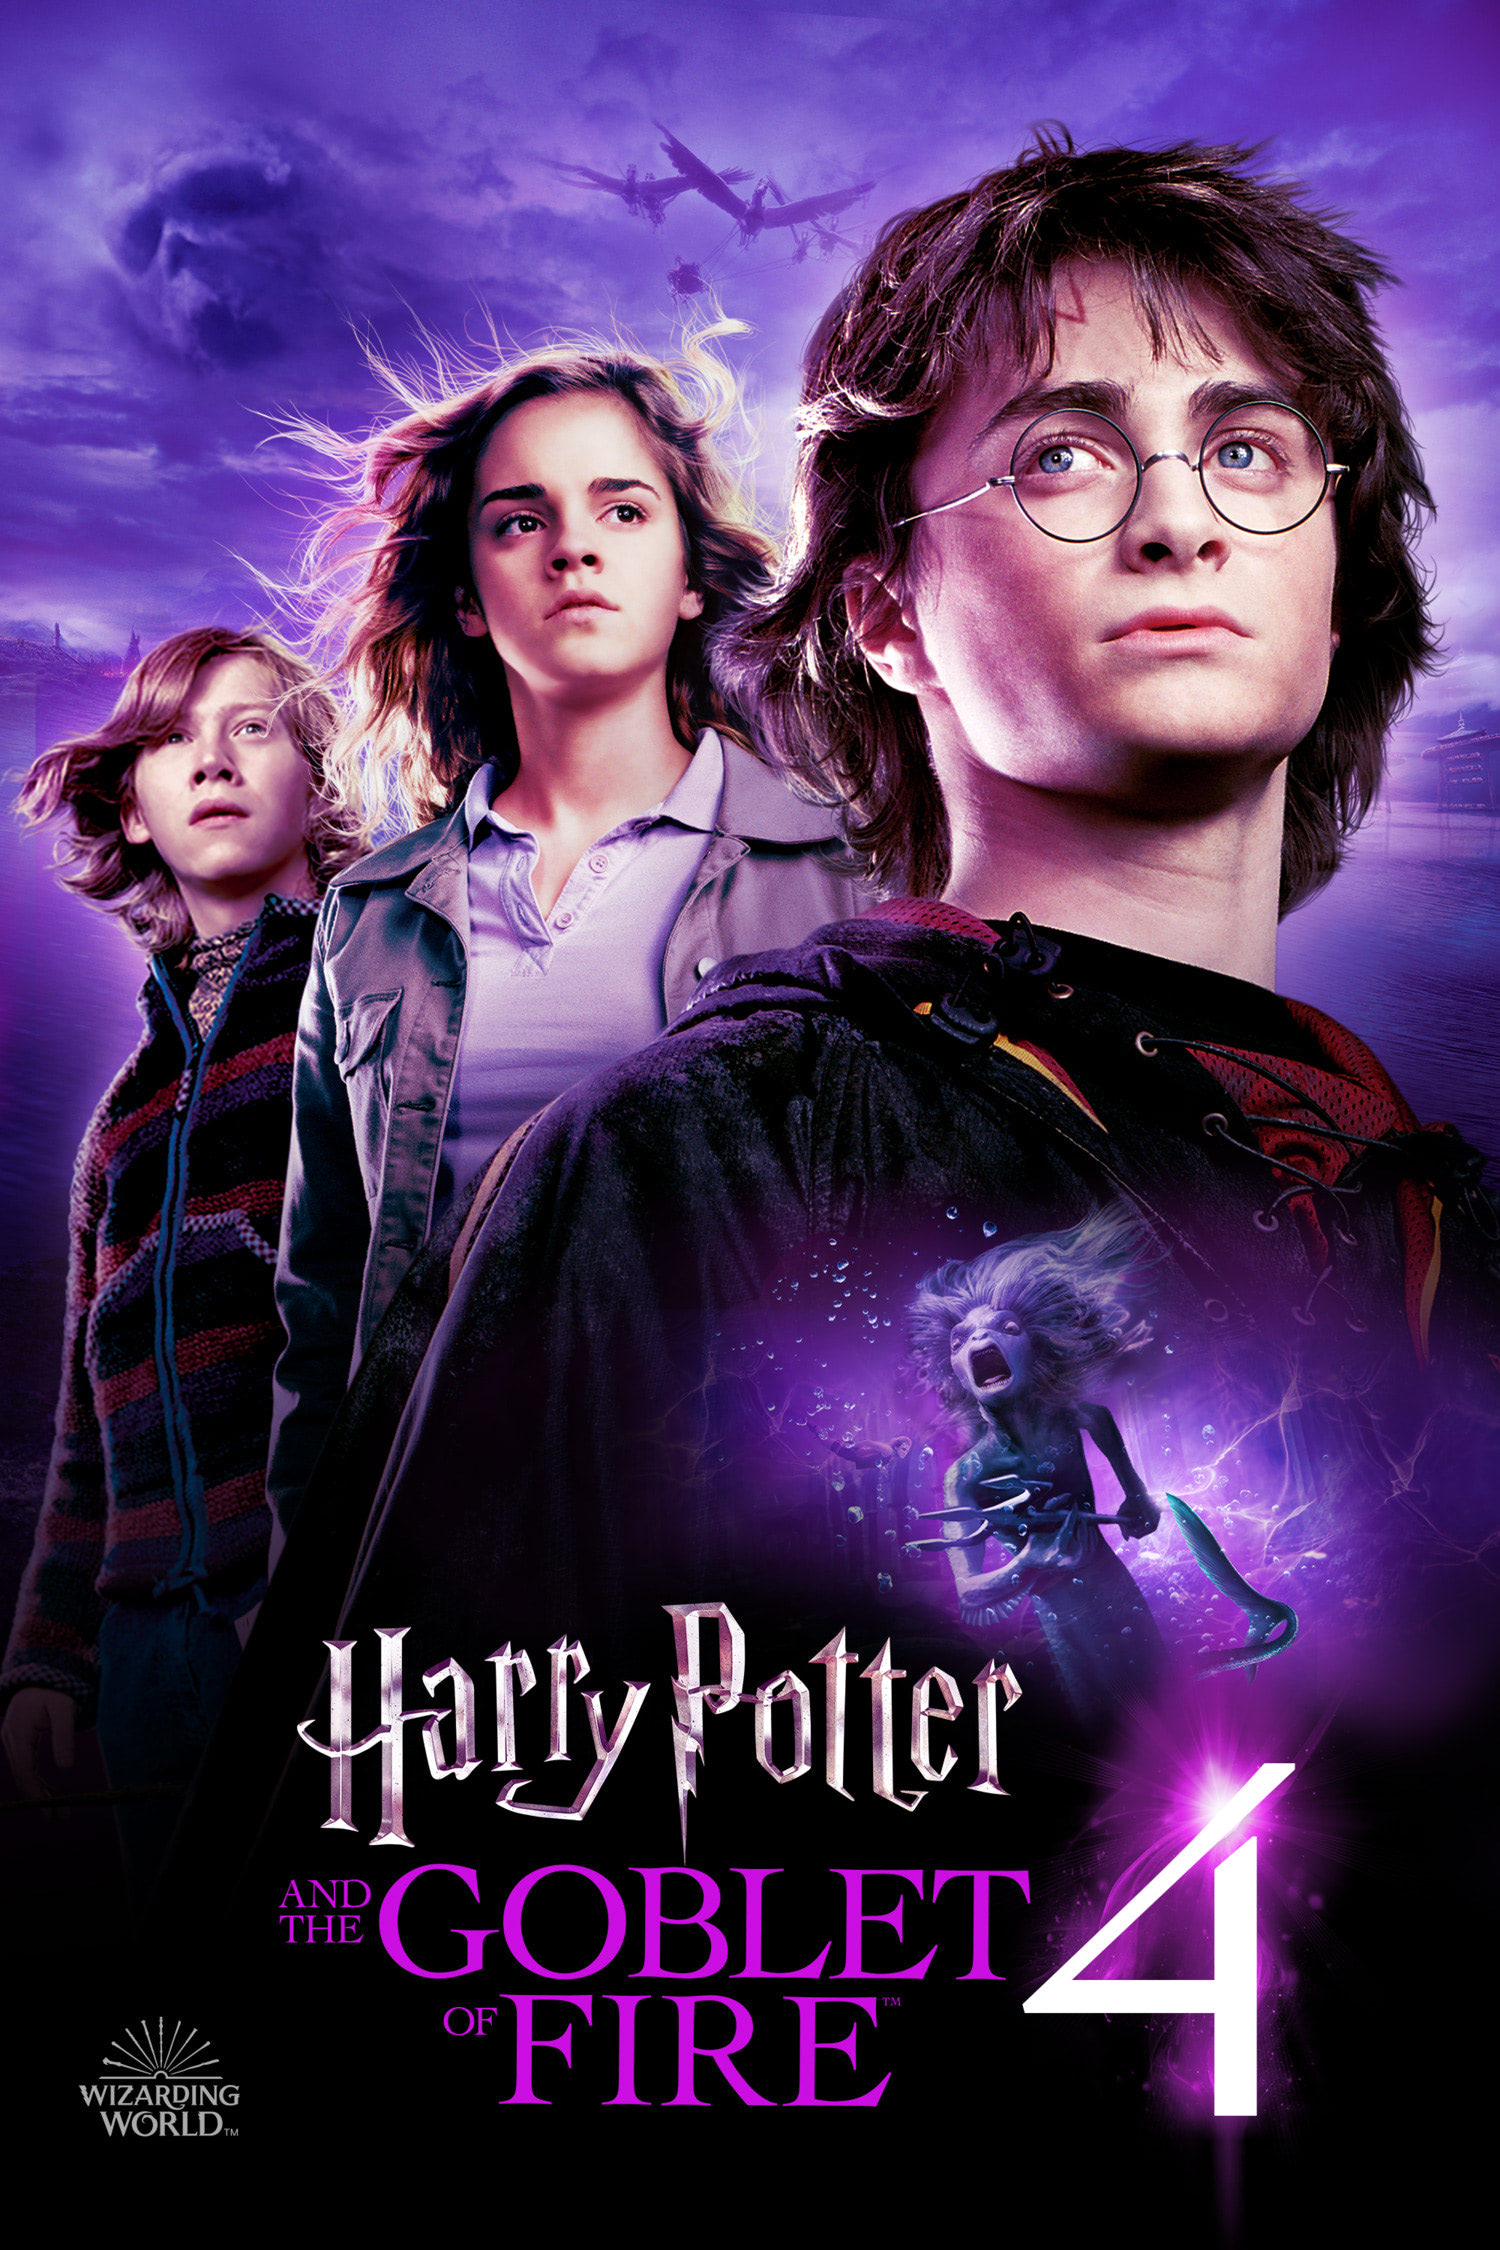 'Goblet of Fire' Wizarding World poster